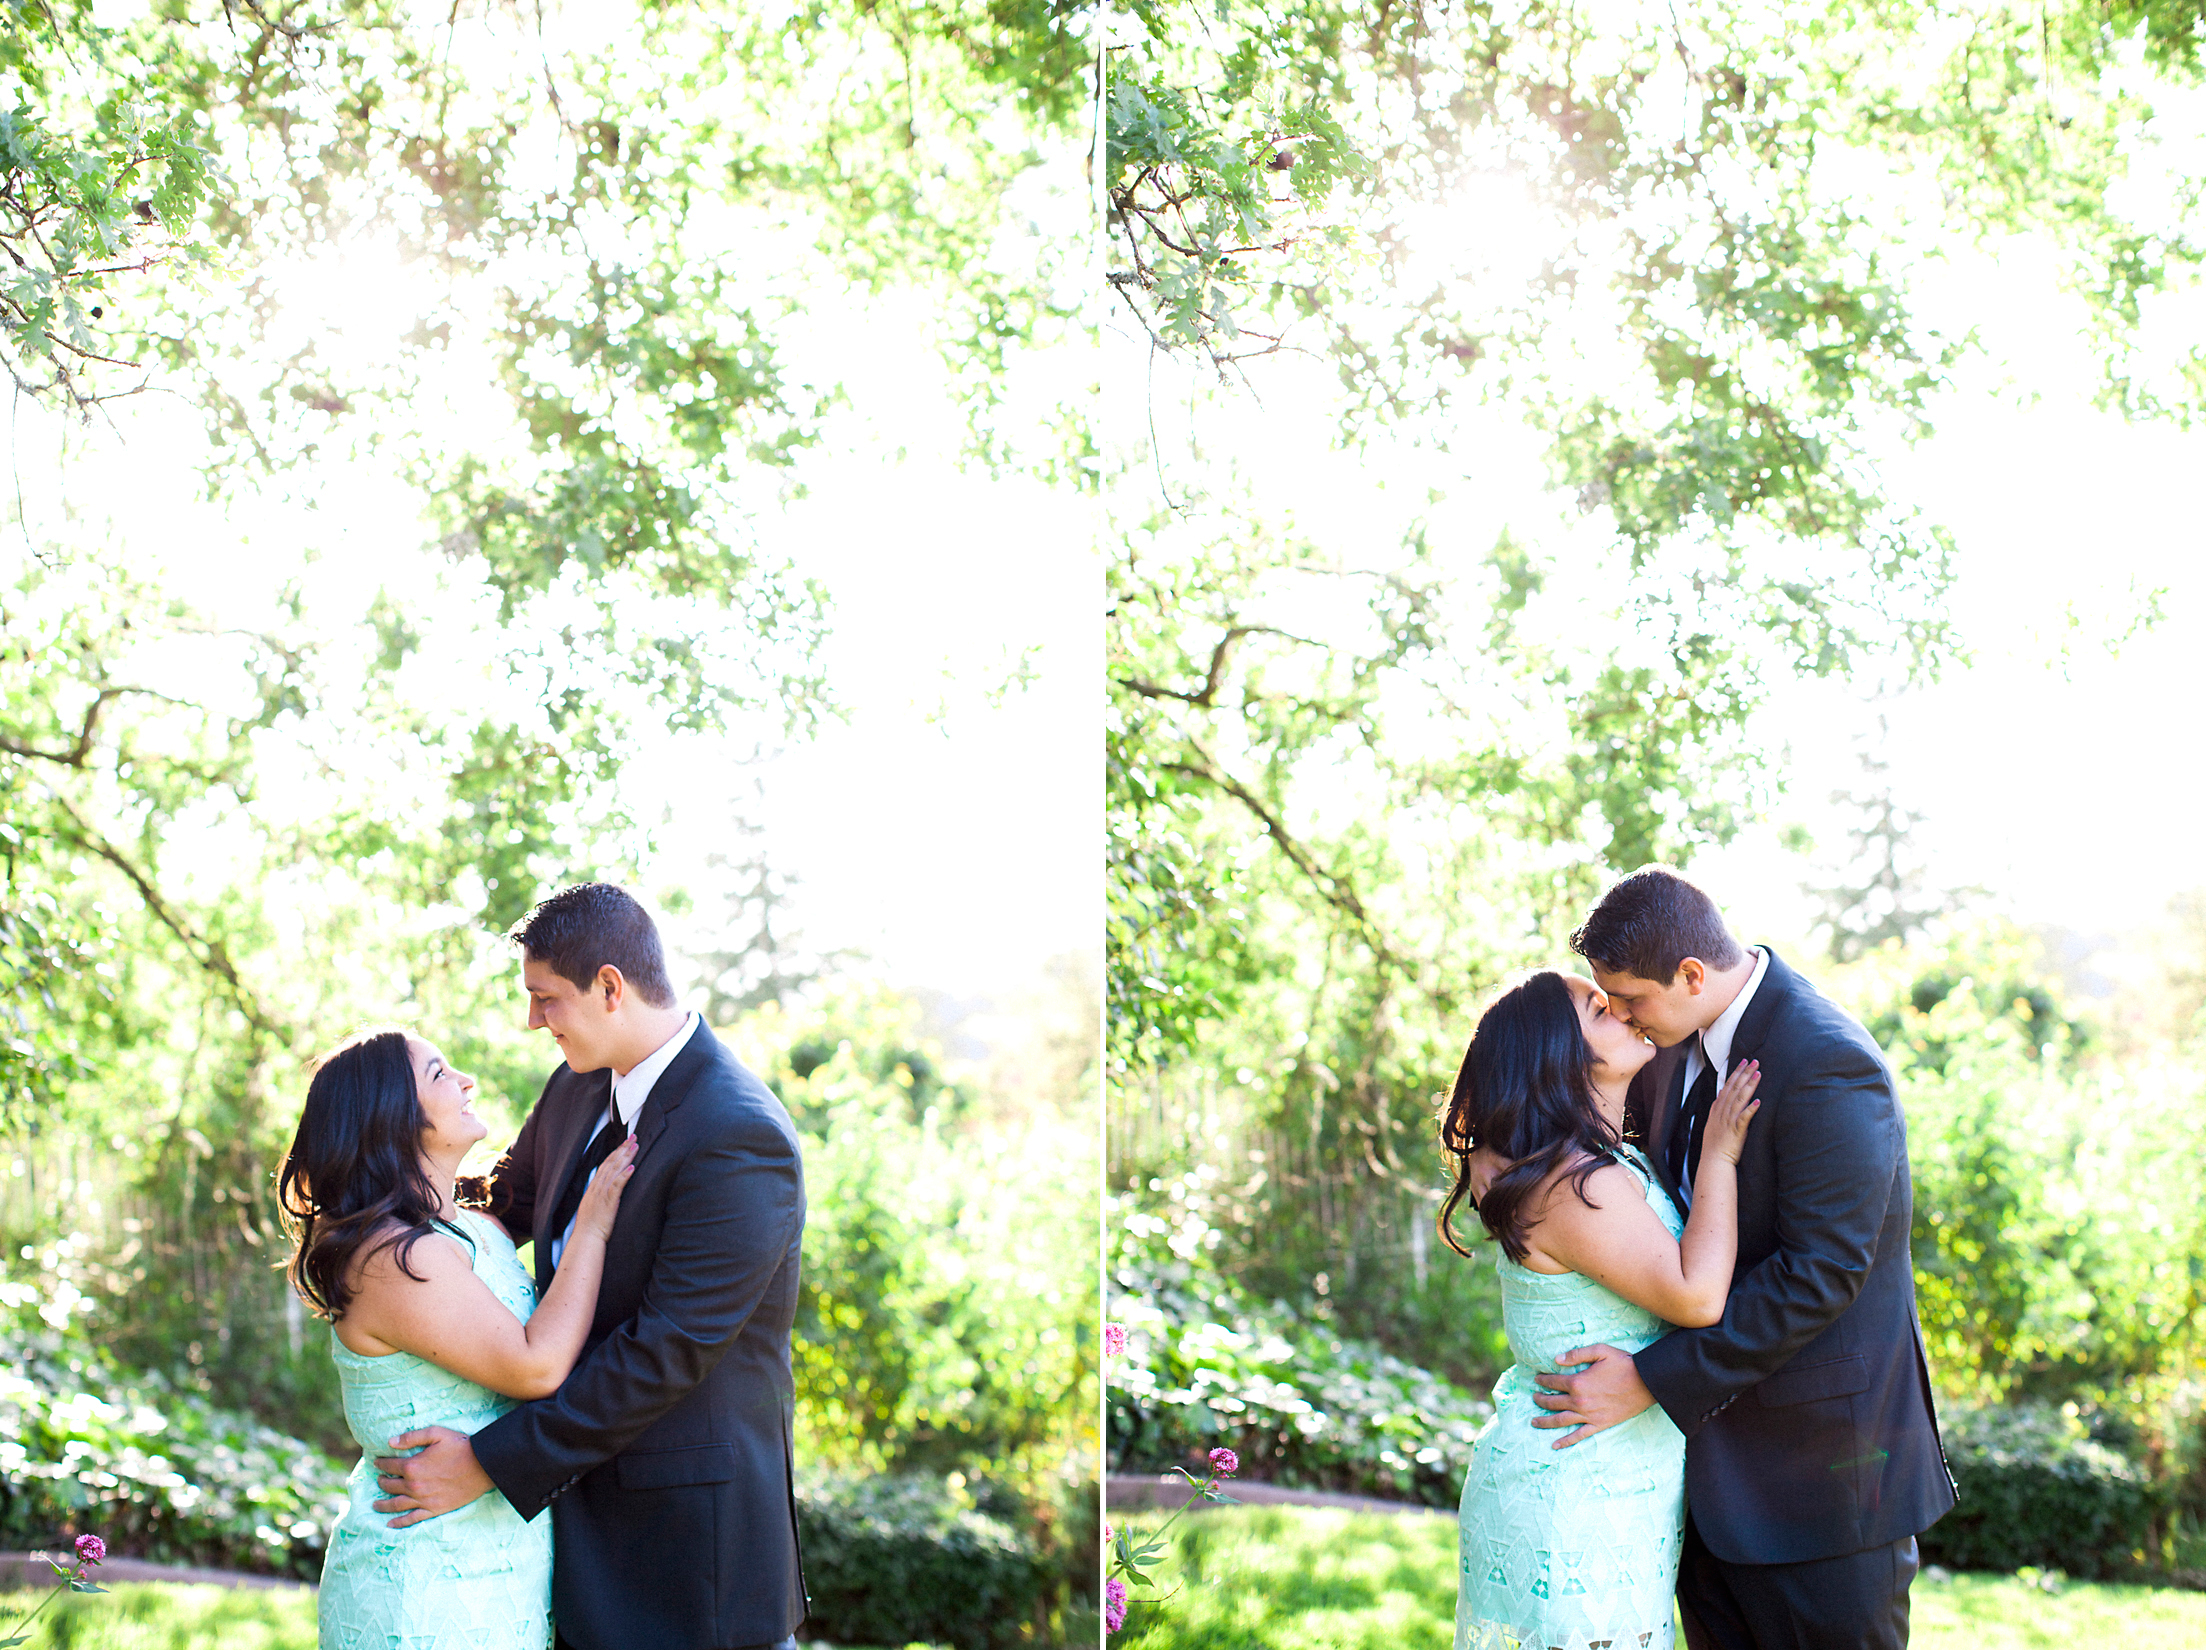 Proposal_bayarea_sanjose_wedding_engagement_nicolequiroz_nicole_quiroz_ring_10.jpg